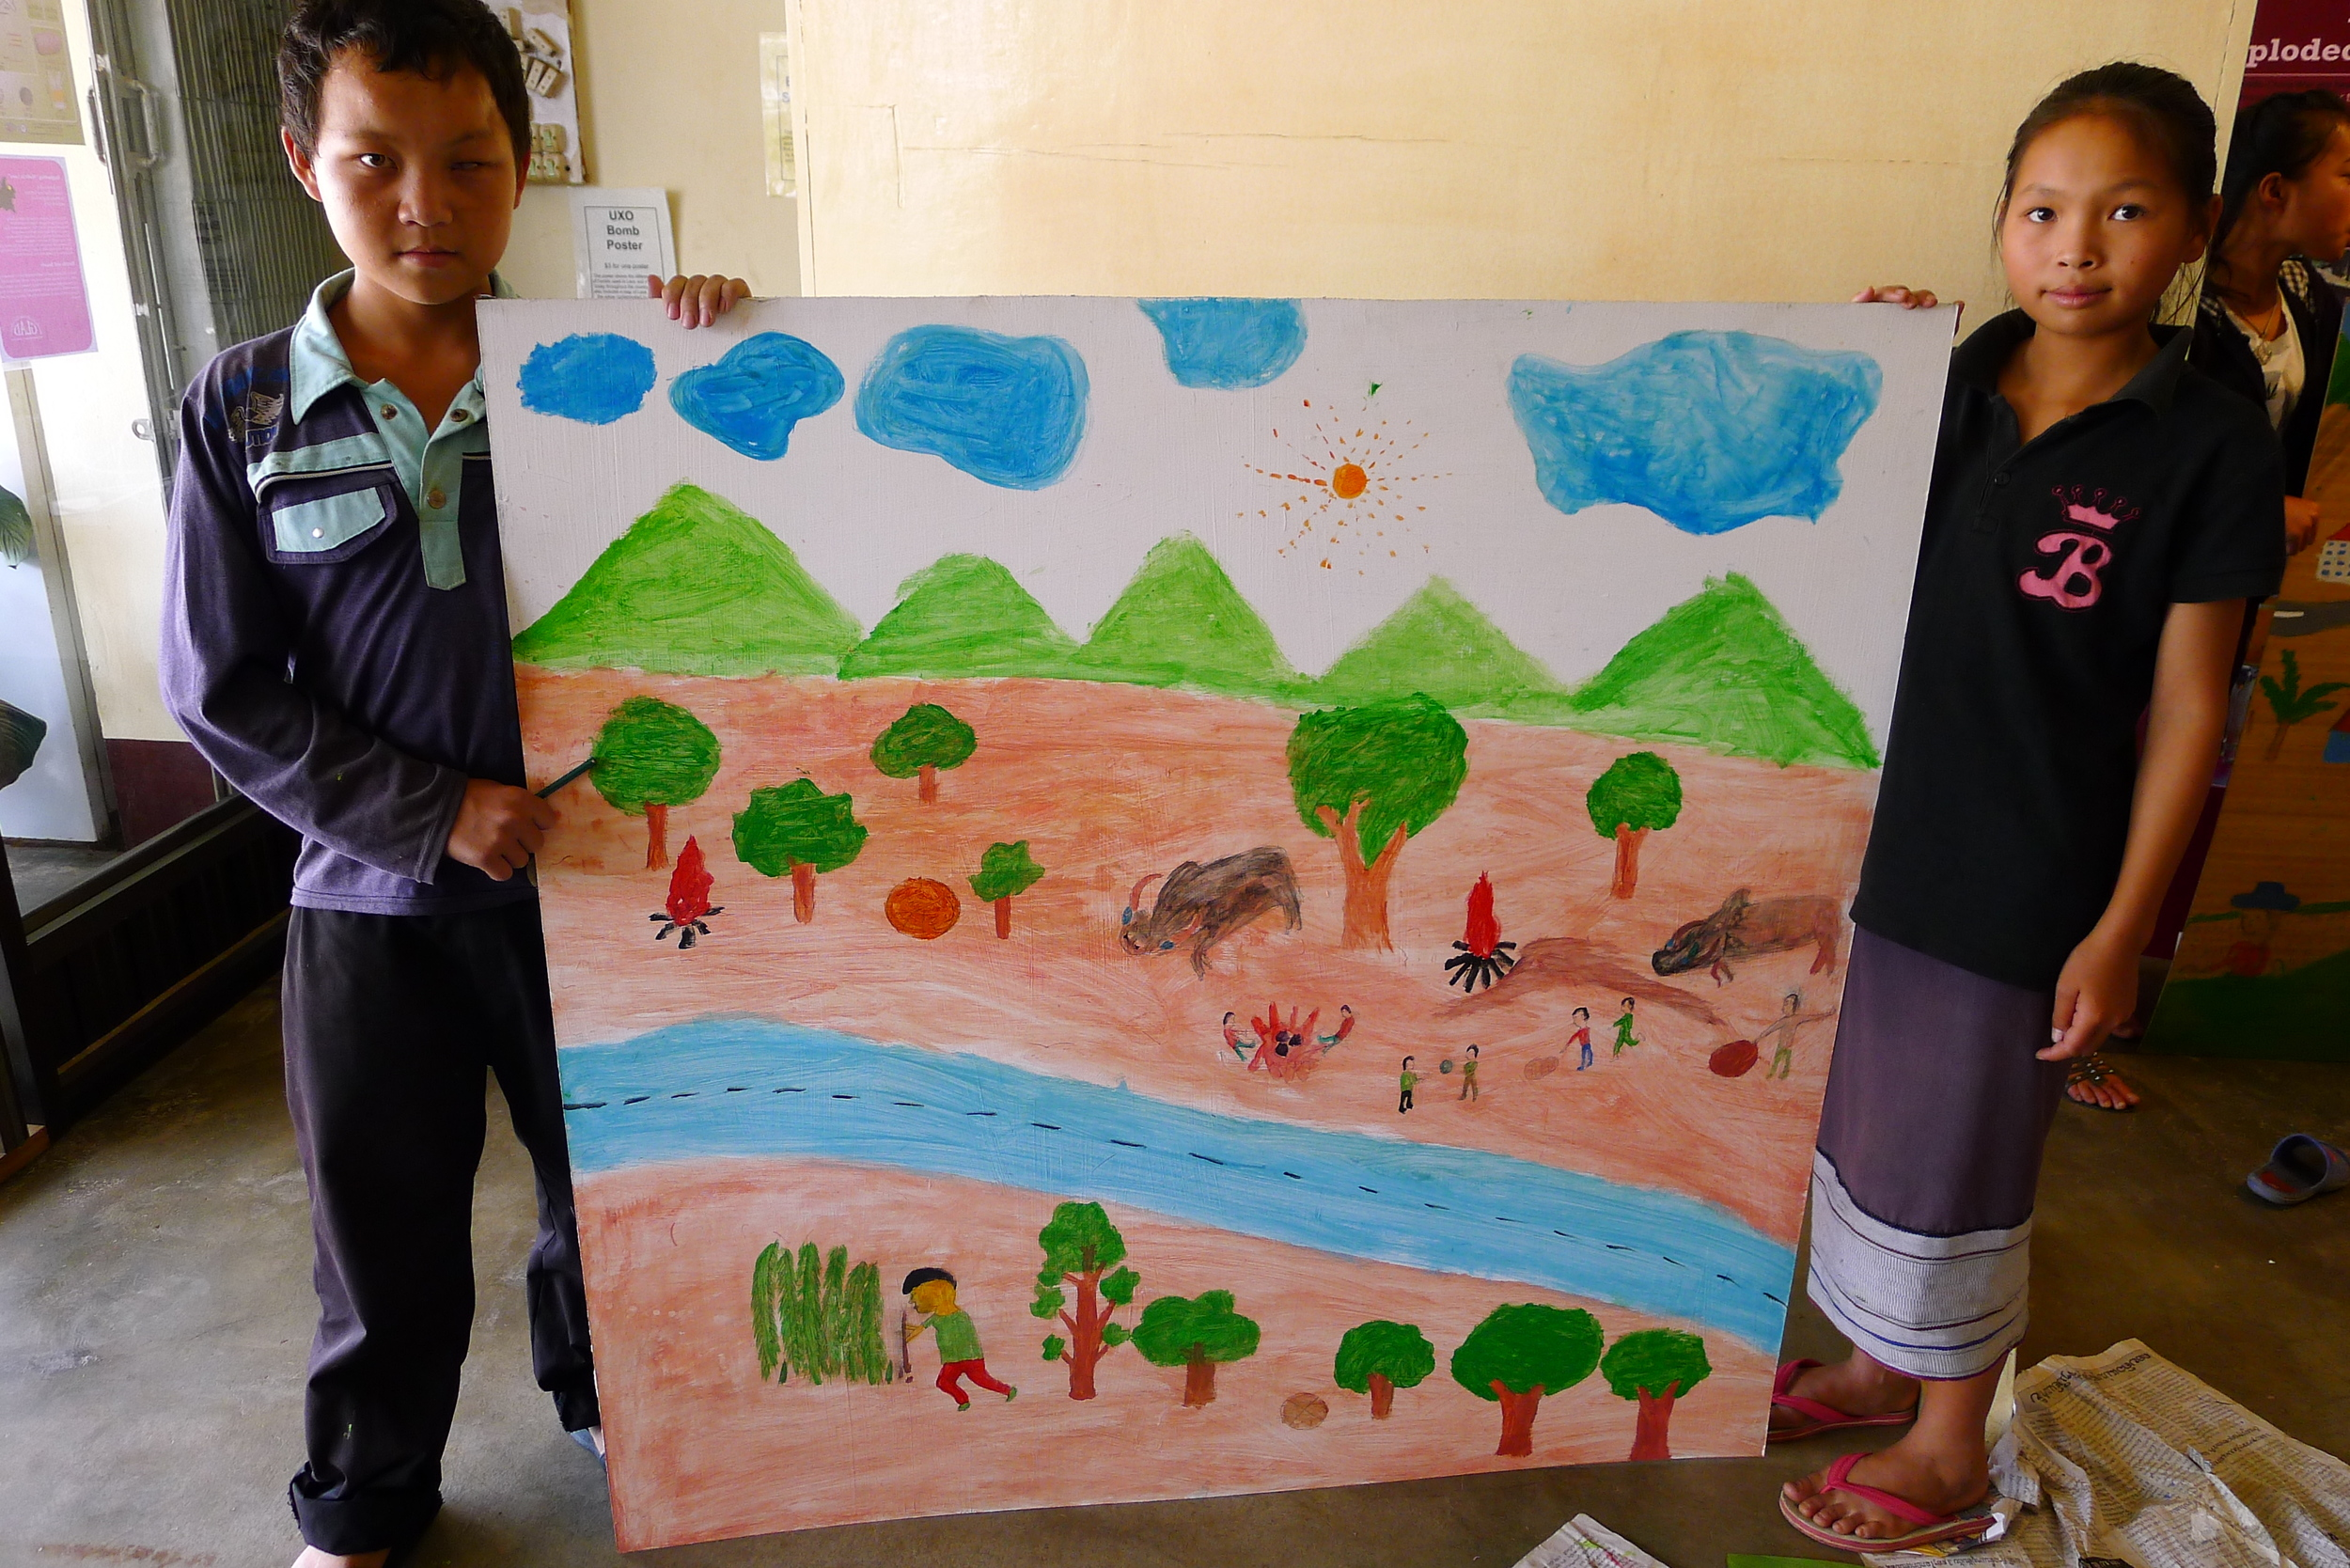 During my Fulbright Fellowship I created a series of art workshops with young (8-18 years old) unexploded ordinance (UXO) survivors. Laos is the most bombed country per capita in the world, and the UXO are still a dangerous issue. Read more about the workshops  here .